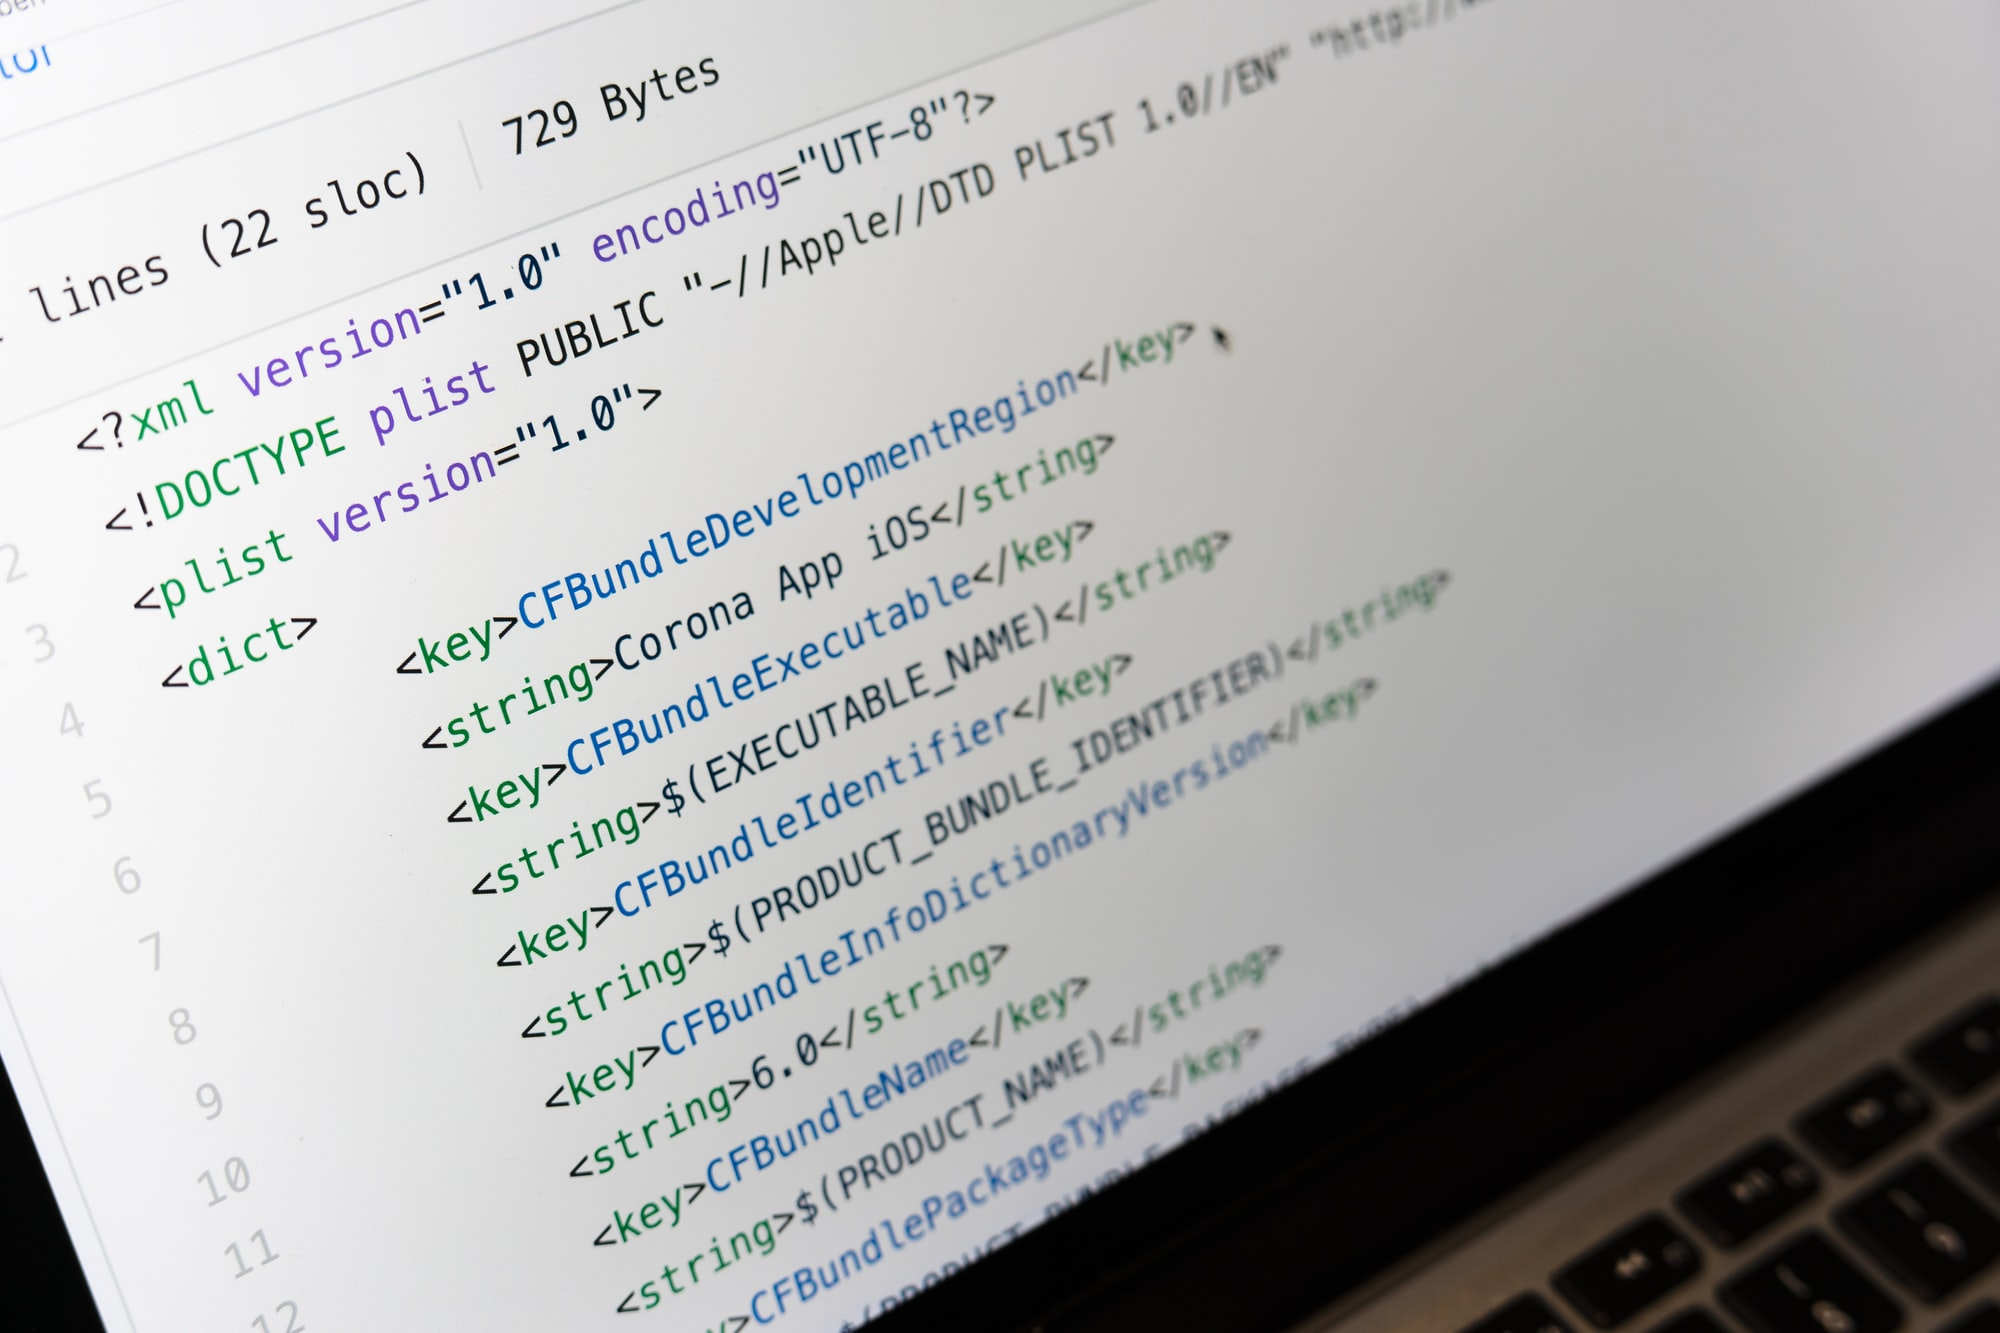 Let's encrypt Automation using ACME